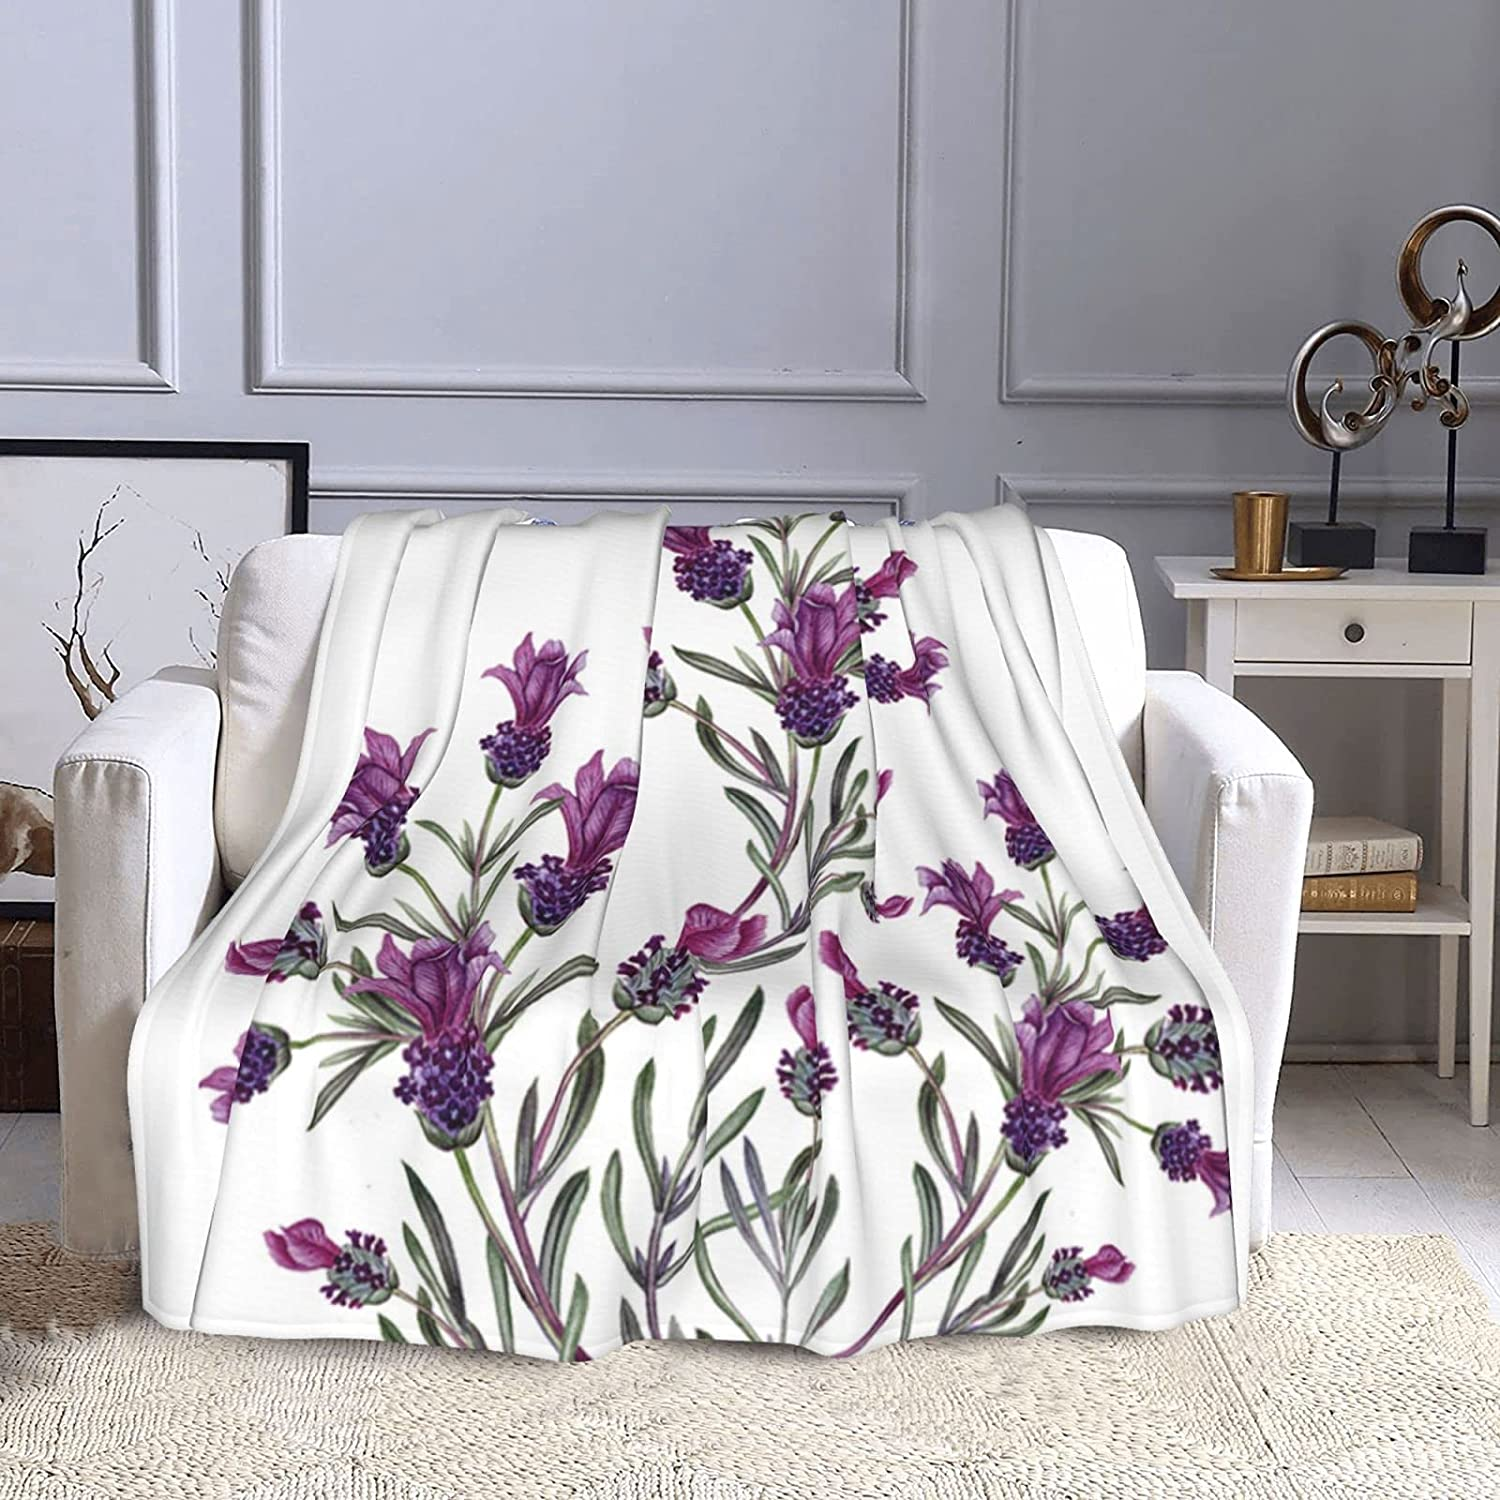 Watercolor Purple Flower Popular standard Big Lavender Branch Quality inspection Nature Aromatherapy